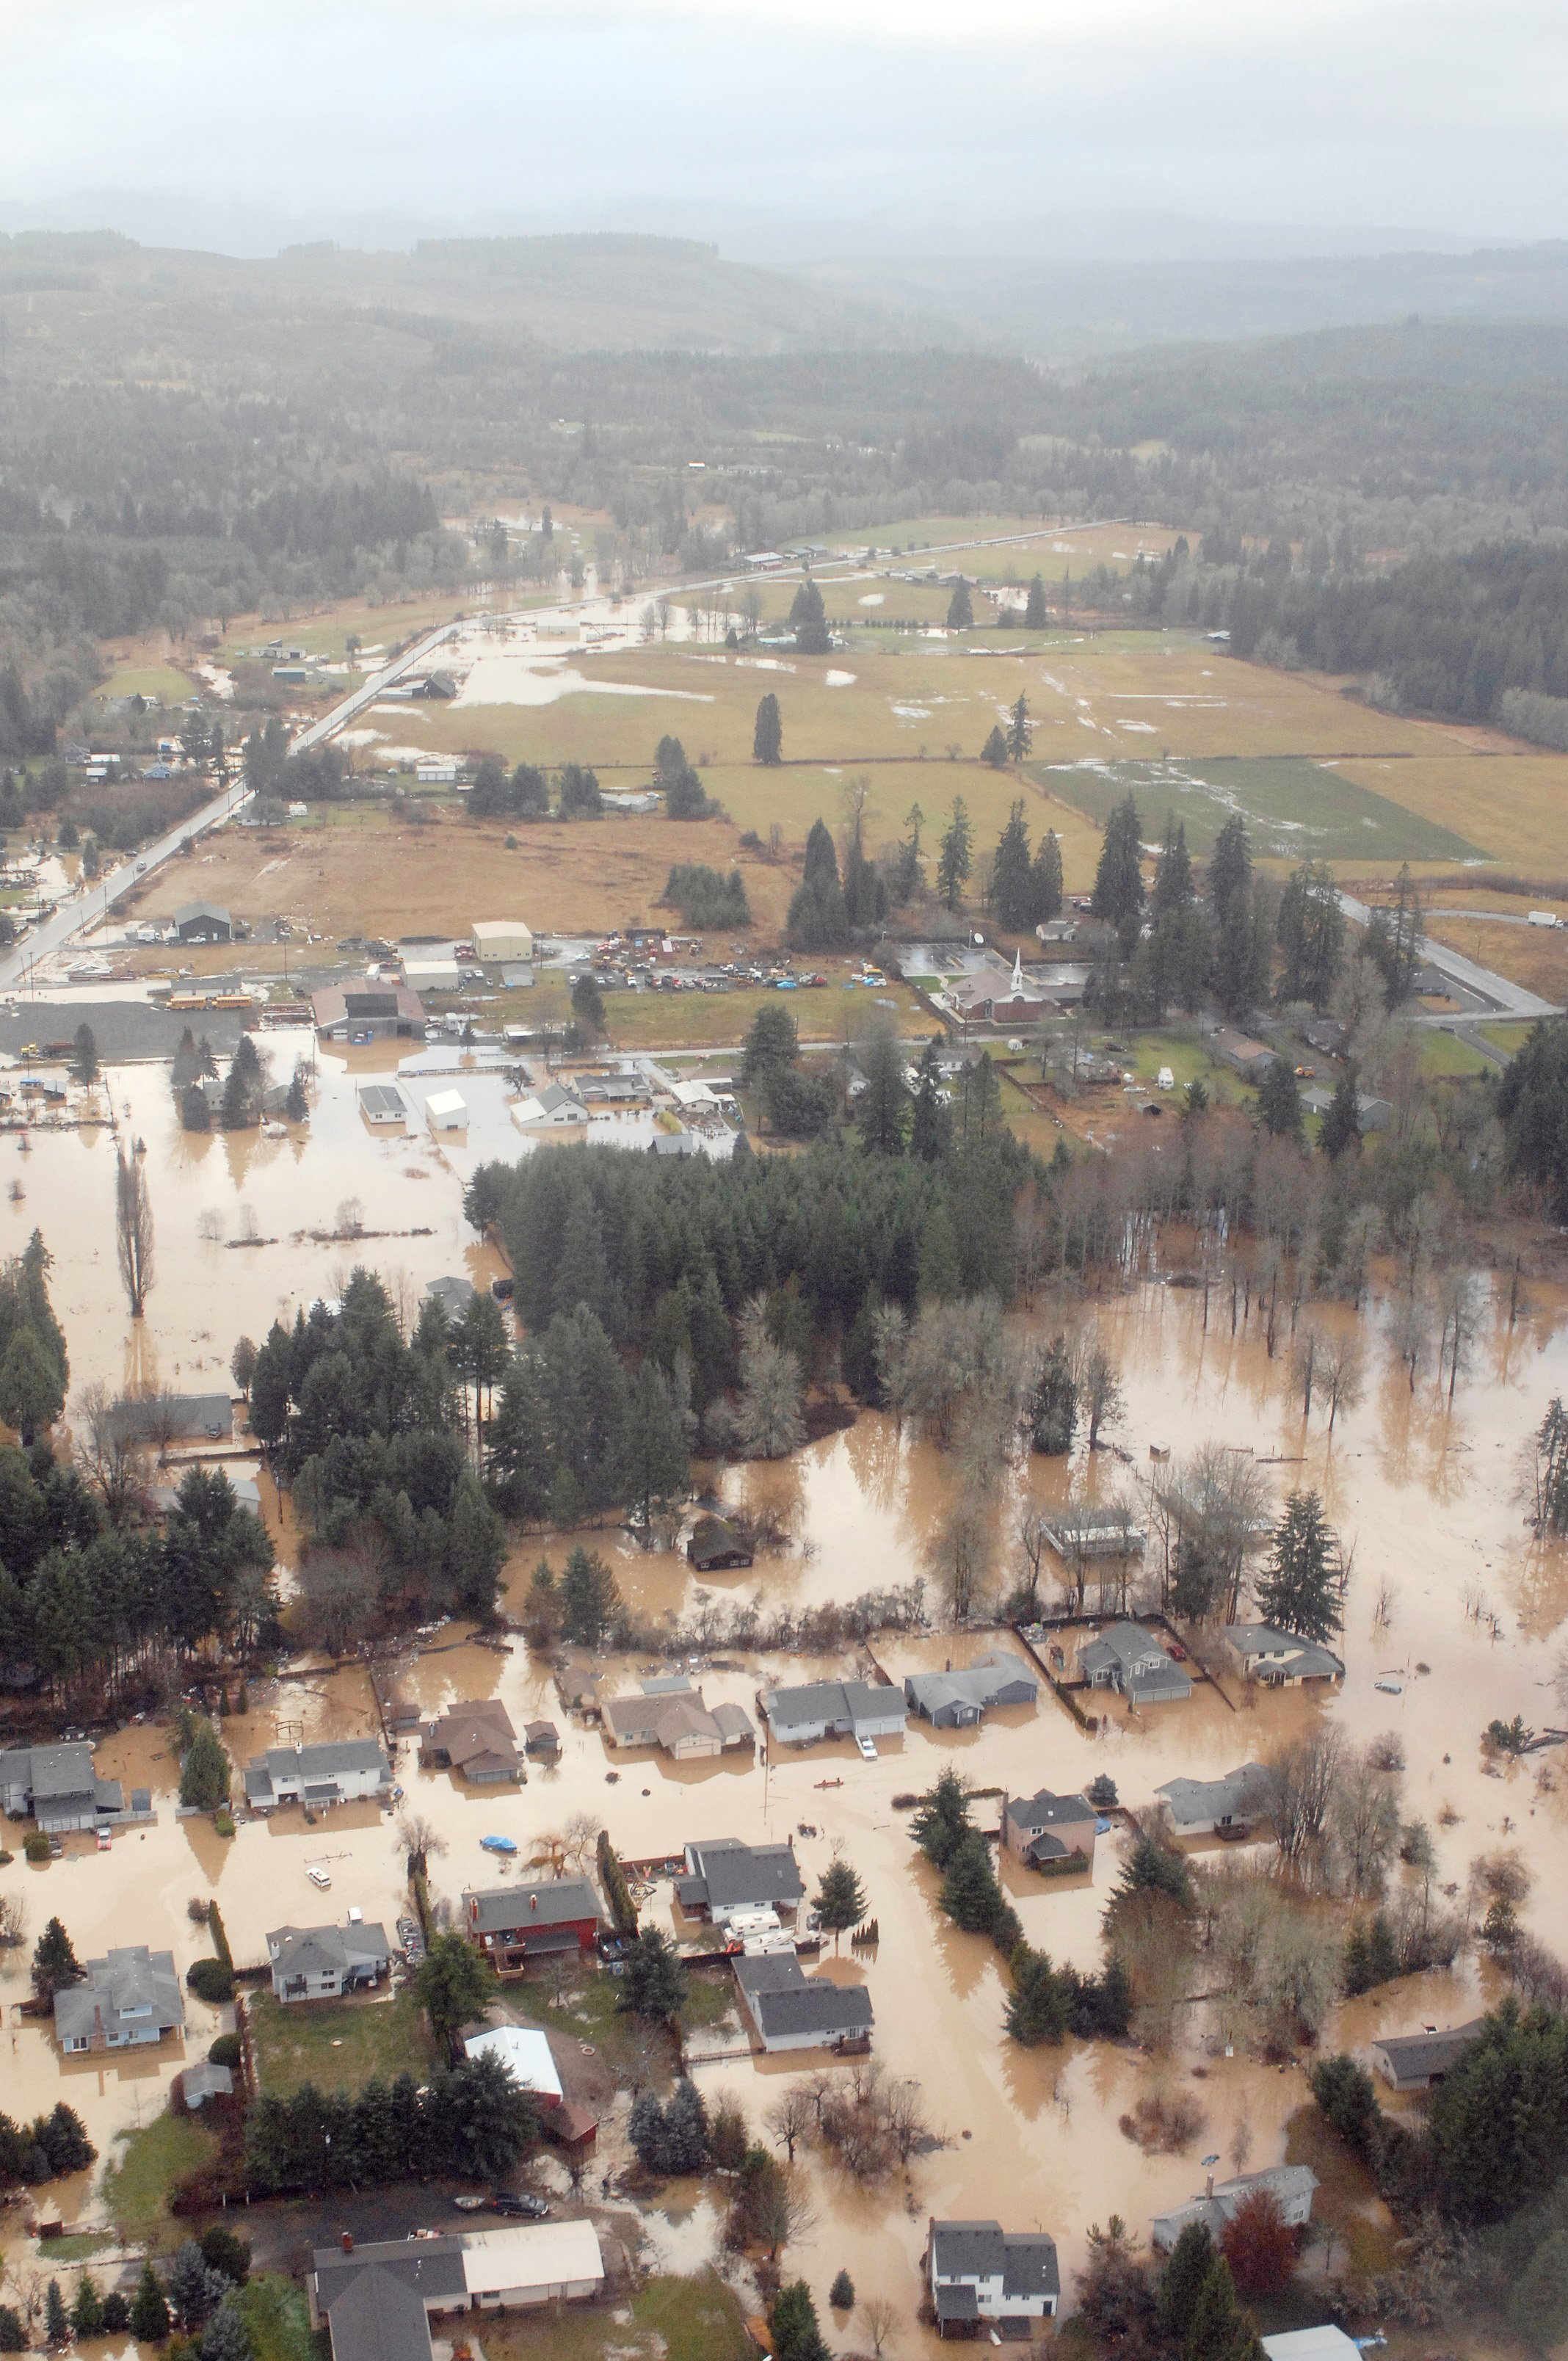 black hawk helicopter with File Aerial View Of The Flood Stricken Town Of Vernonia  Oregon  Dec  4  2007 on Lina Posada Wallpapers besides File US Army 51217 C  TAJI  Iraq Spc  Son Le  from Tomball  Texas  an AH 64D Apache attack helicopter mechanic in  pany B  615th Aviation Support Battalion  1st Air Cavalry Brigade  1st Cavalry Division  Multi Natio further VH 60M 20Black 20Hawk 20Helicopter 20in 20US 20Army 20Colors also 49 likewise Sikorsky S 70 SP YVA lockheed 247591 large.